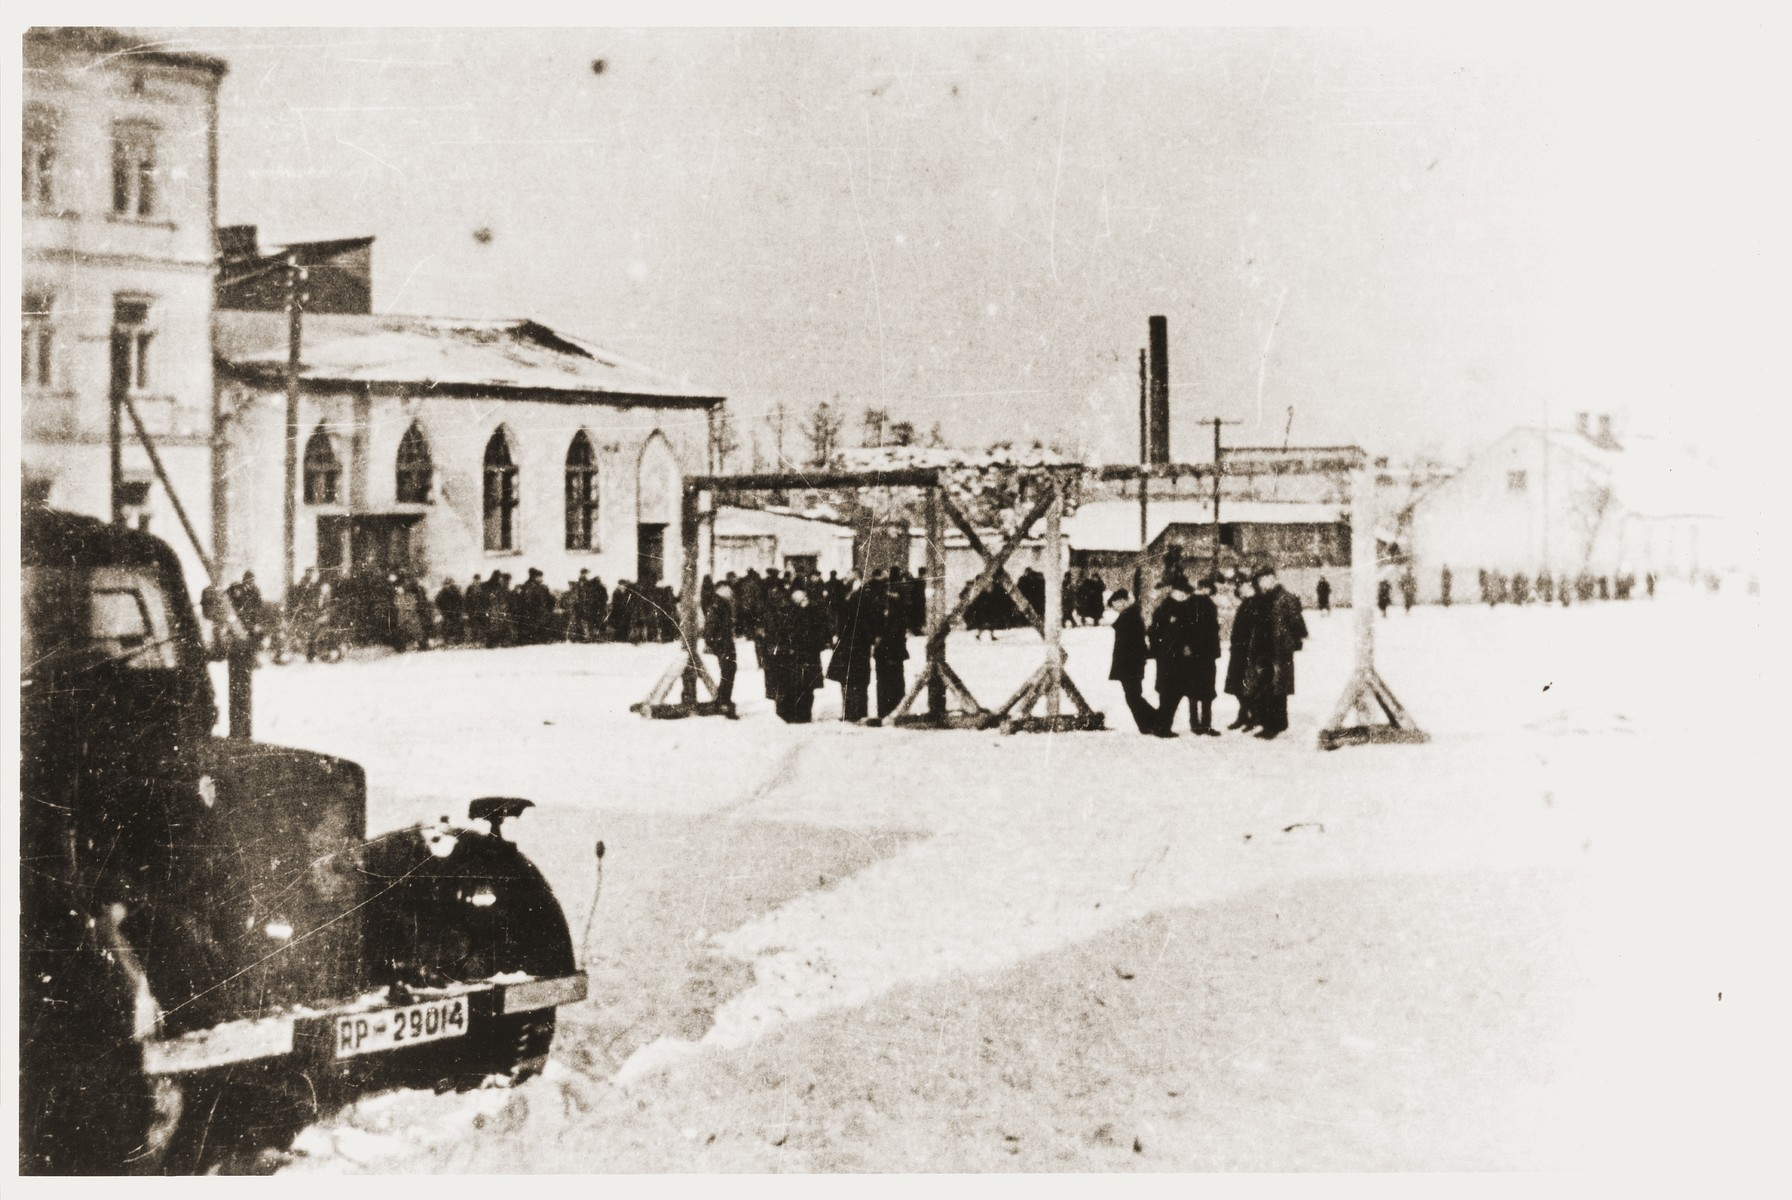 Ten Jews are hanged on a gallows erected in the town square of Wielun.